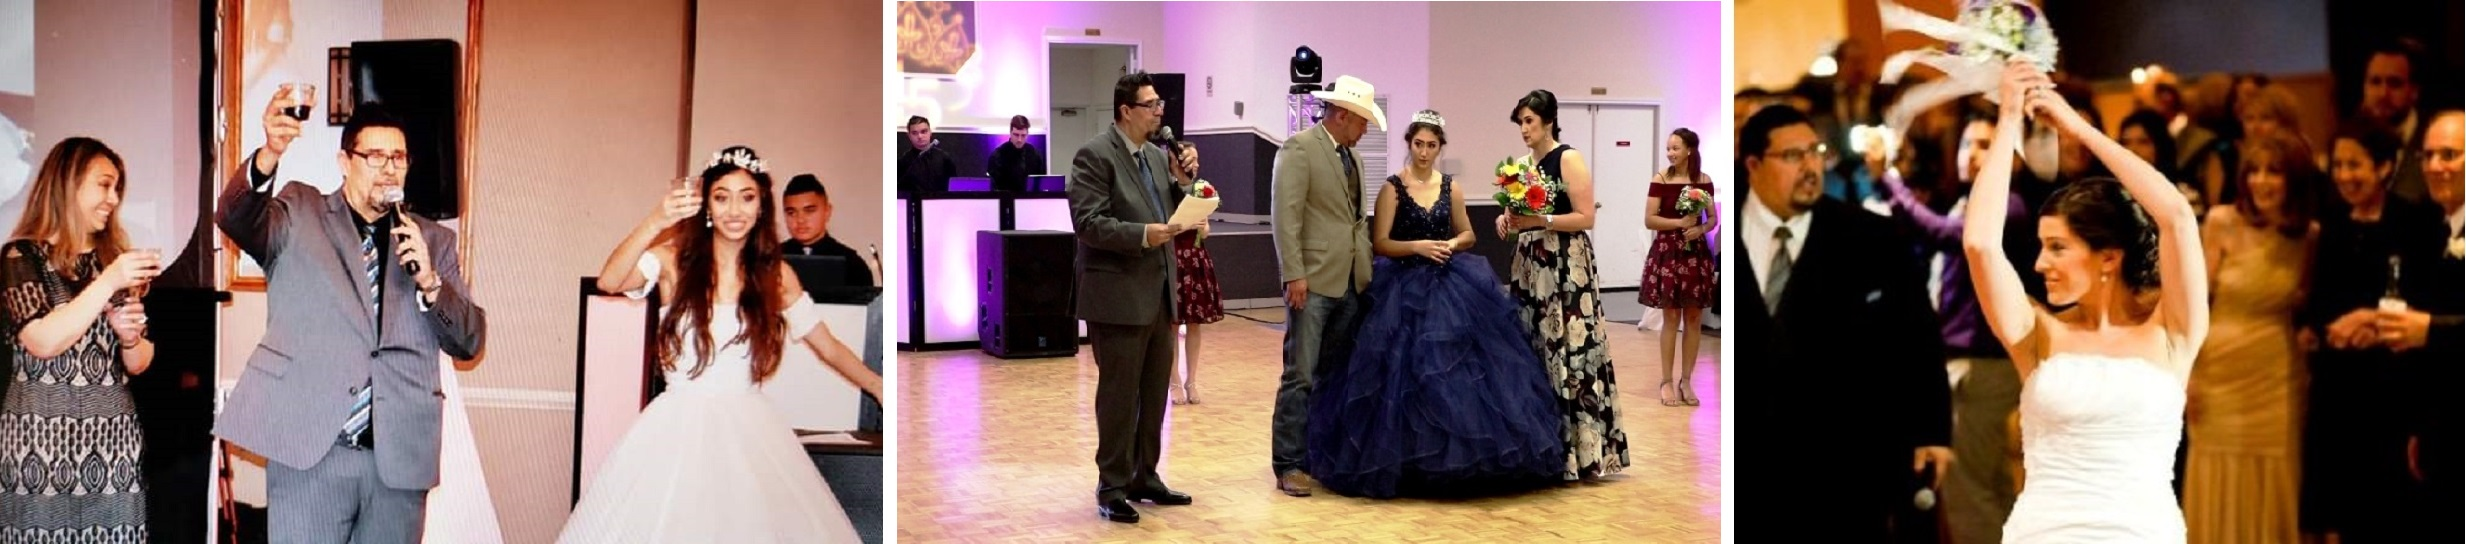 Houston Wedding DJ, Wedding DJs in Houston, Bilingual Master of Ceremony, Latino Master of Ceremony, Spanish Master of Ceremony, Hispanic Master of Ceremony, Sonido, DJ Sammy de Houston, Awesome Event Pros, Awesome Music Entertainment, AME Djs, Maestro de Ceremonia, Boda, Quinceañera